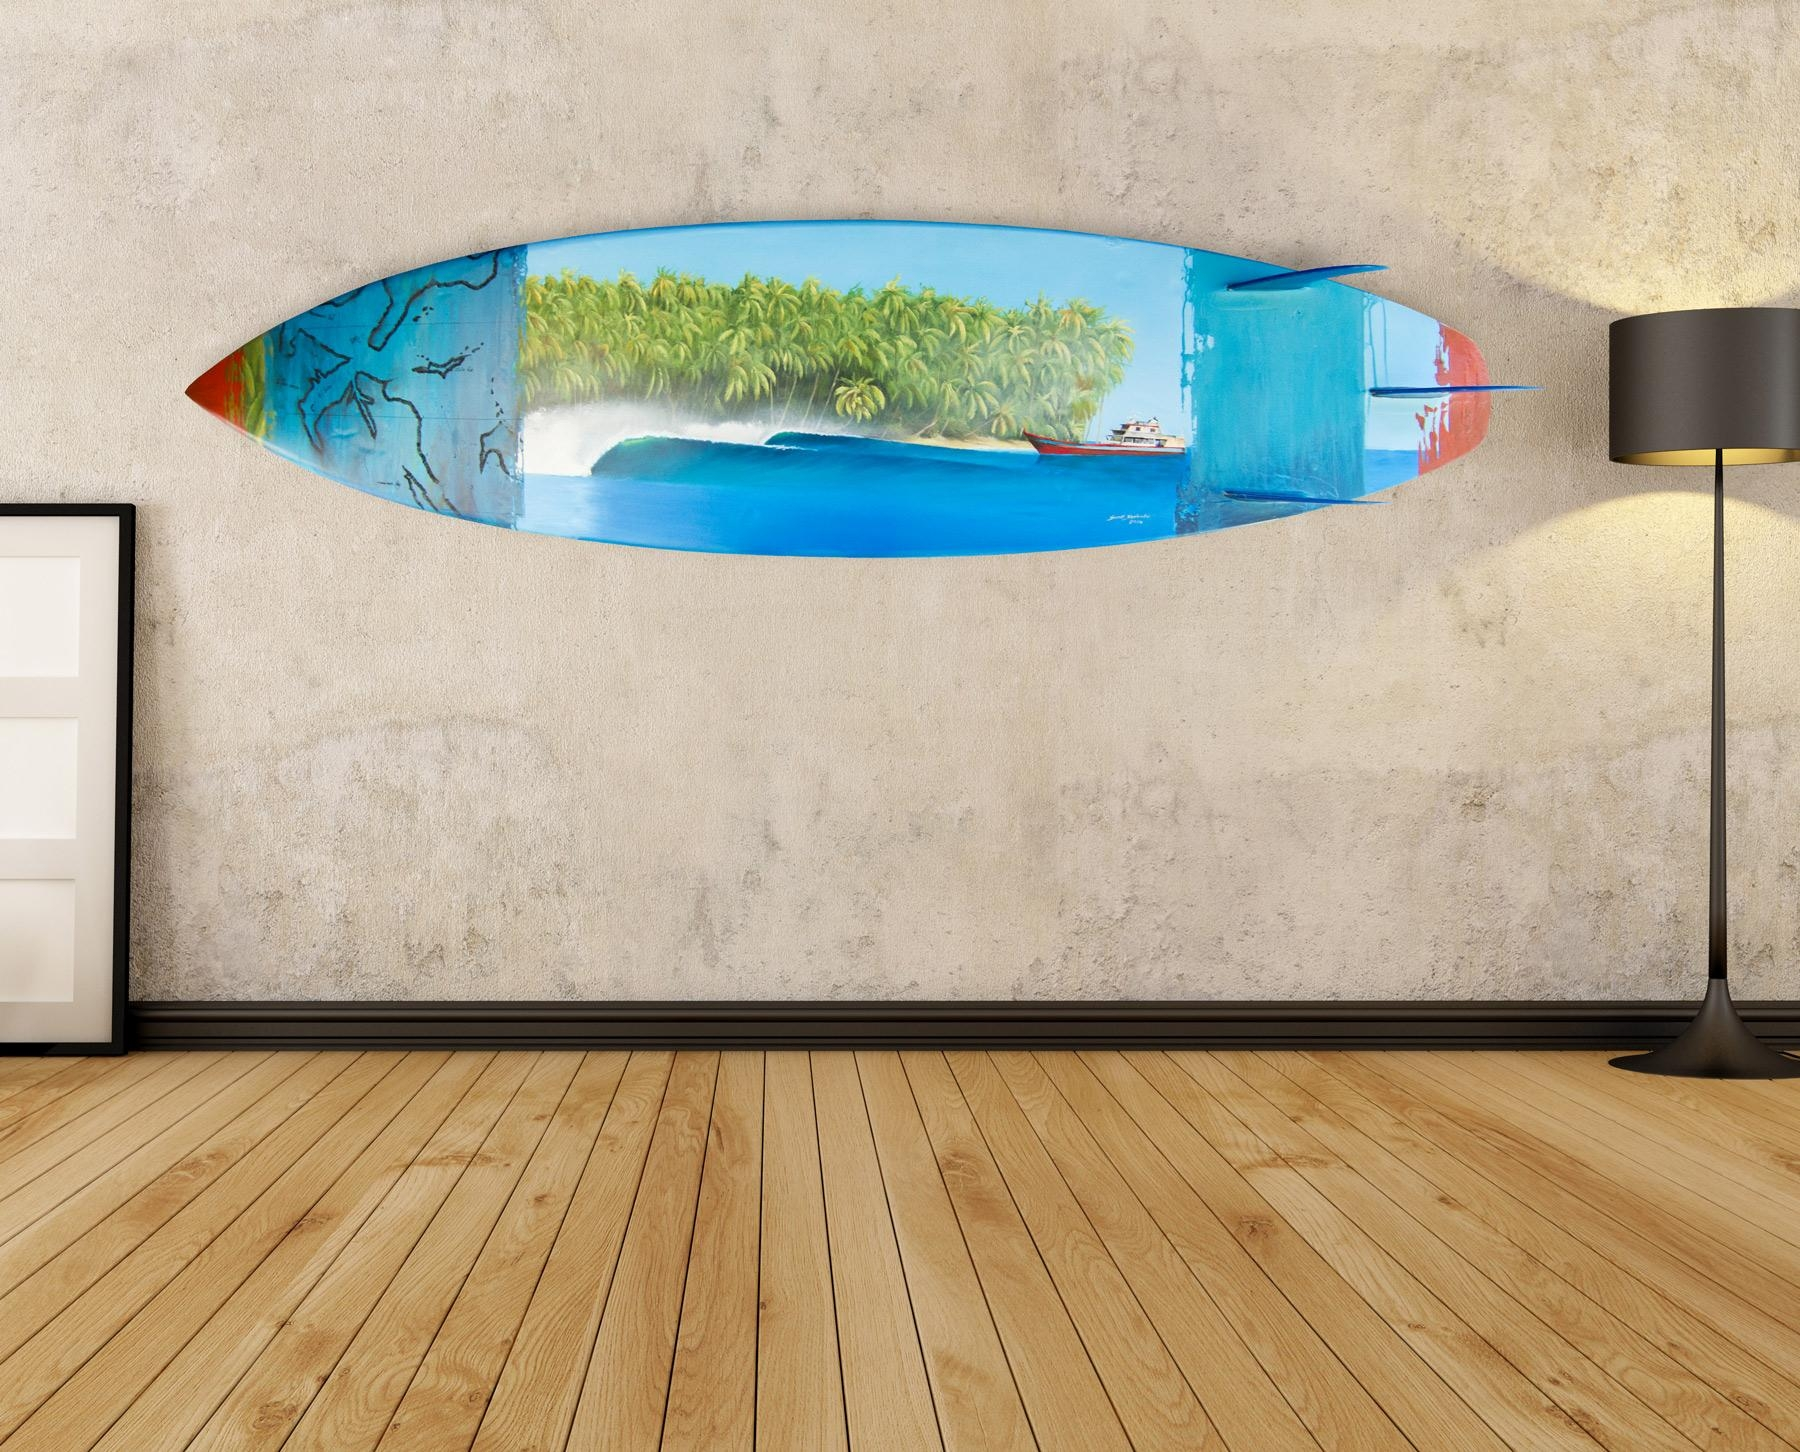 Wall Art Ideas Design : Colorful Unique Surf Board Wall Art Intended For Decorative Surfboard Wall Art (Image 15 of 20)